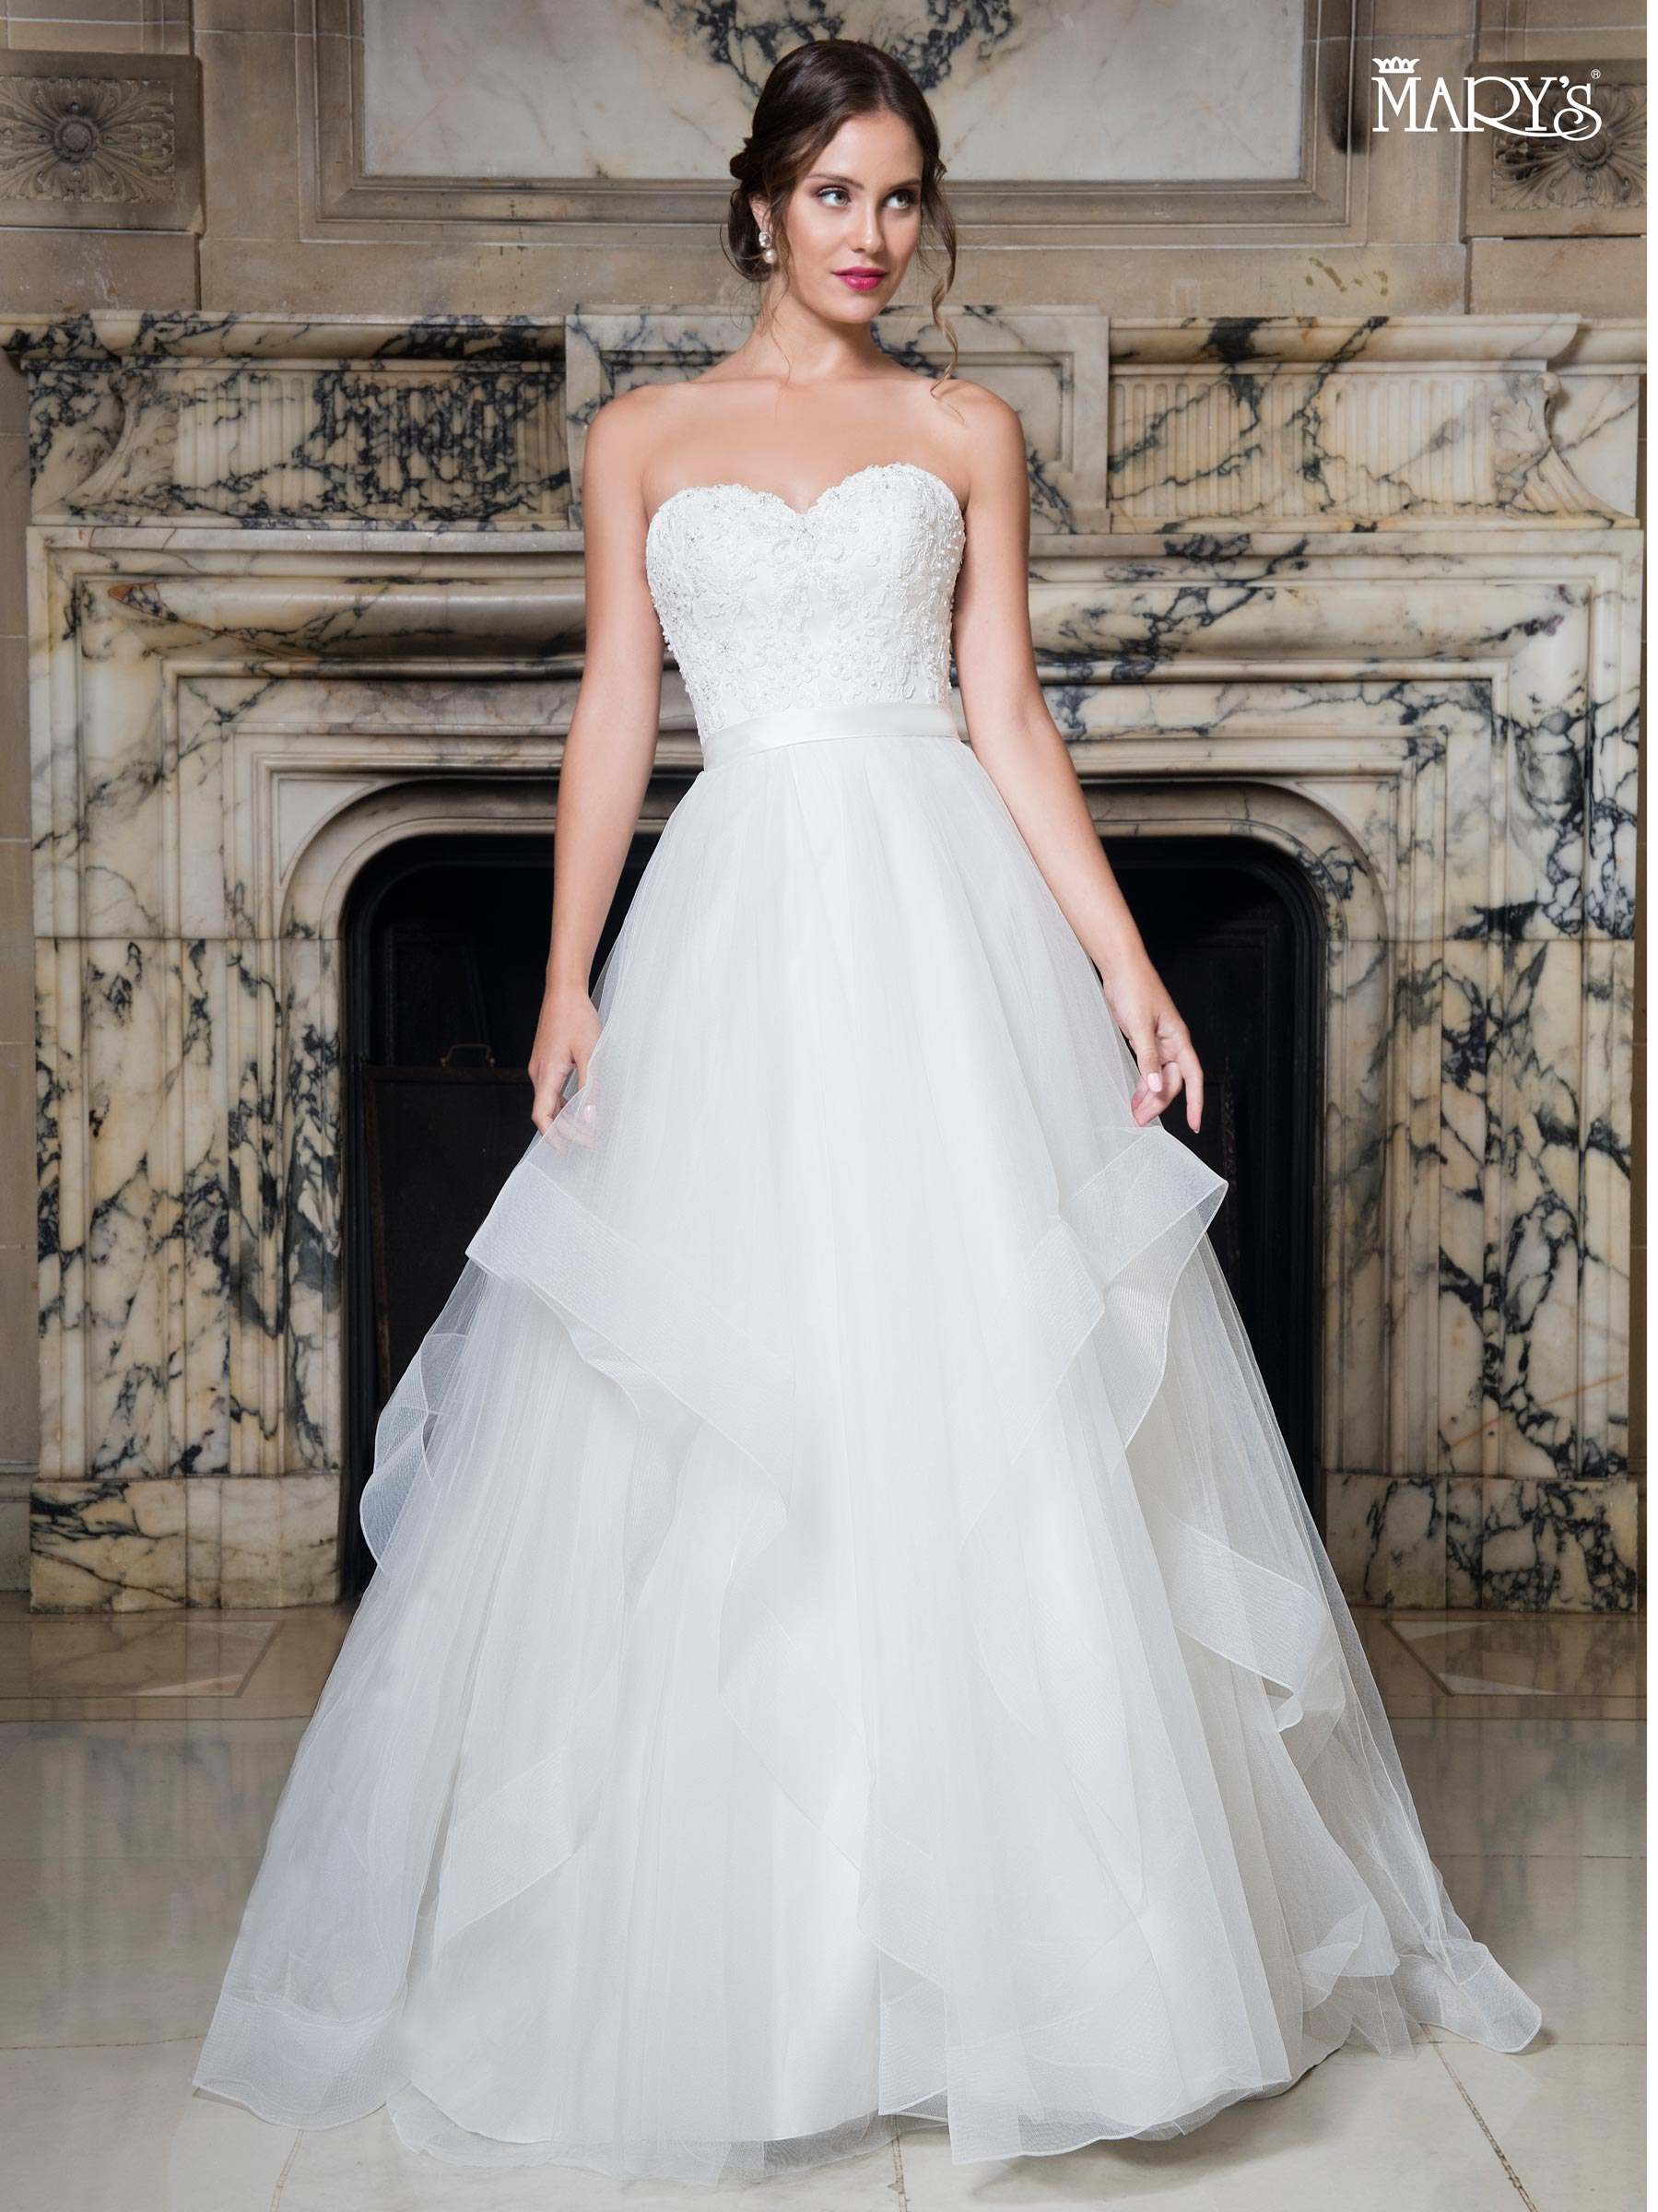 Bridal Wedding Dresses | Mary's | Style - MB3010